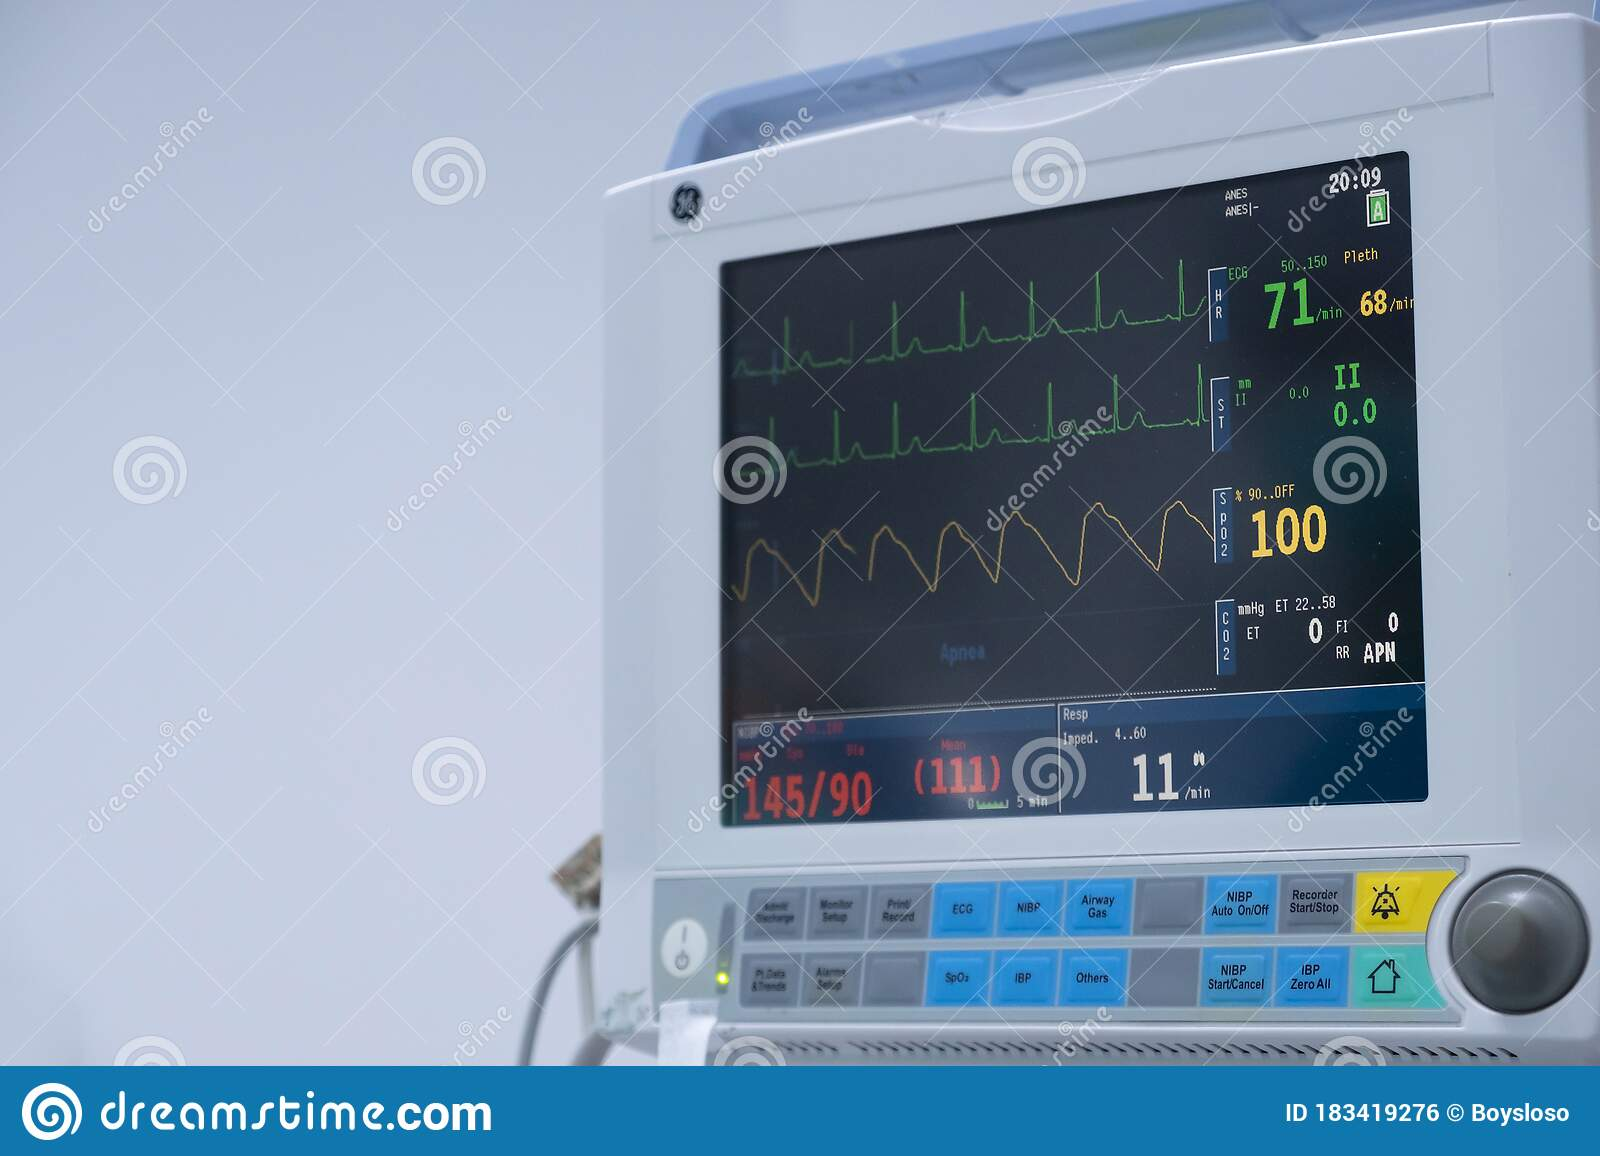 The Vital Signs Monitor In Operating Room In Hospital